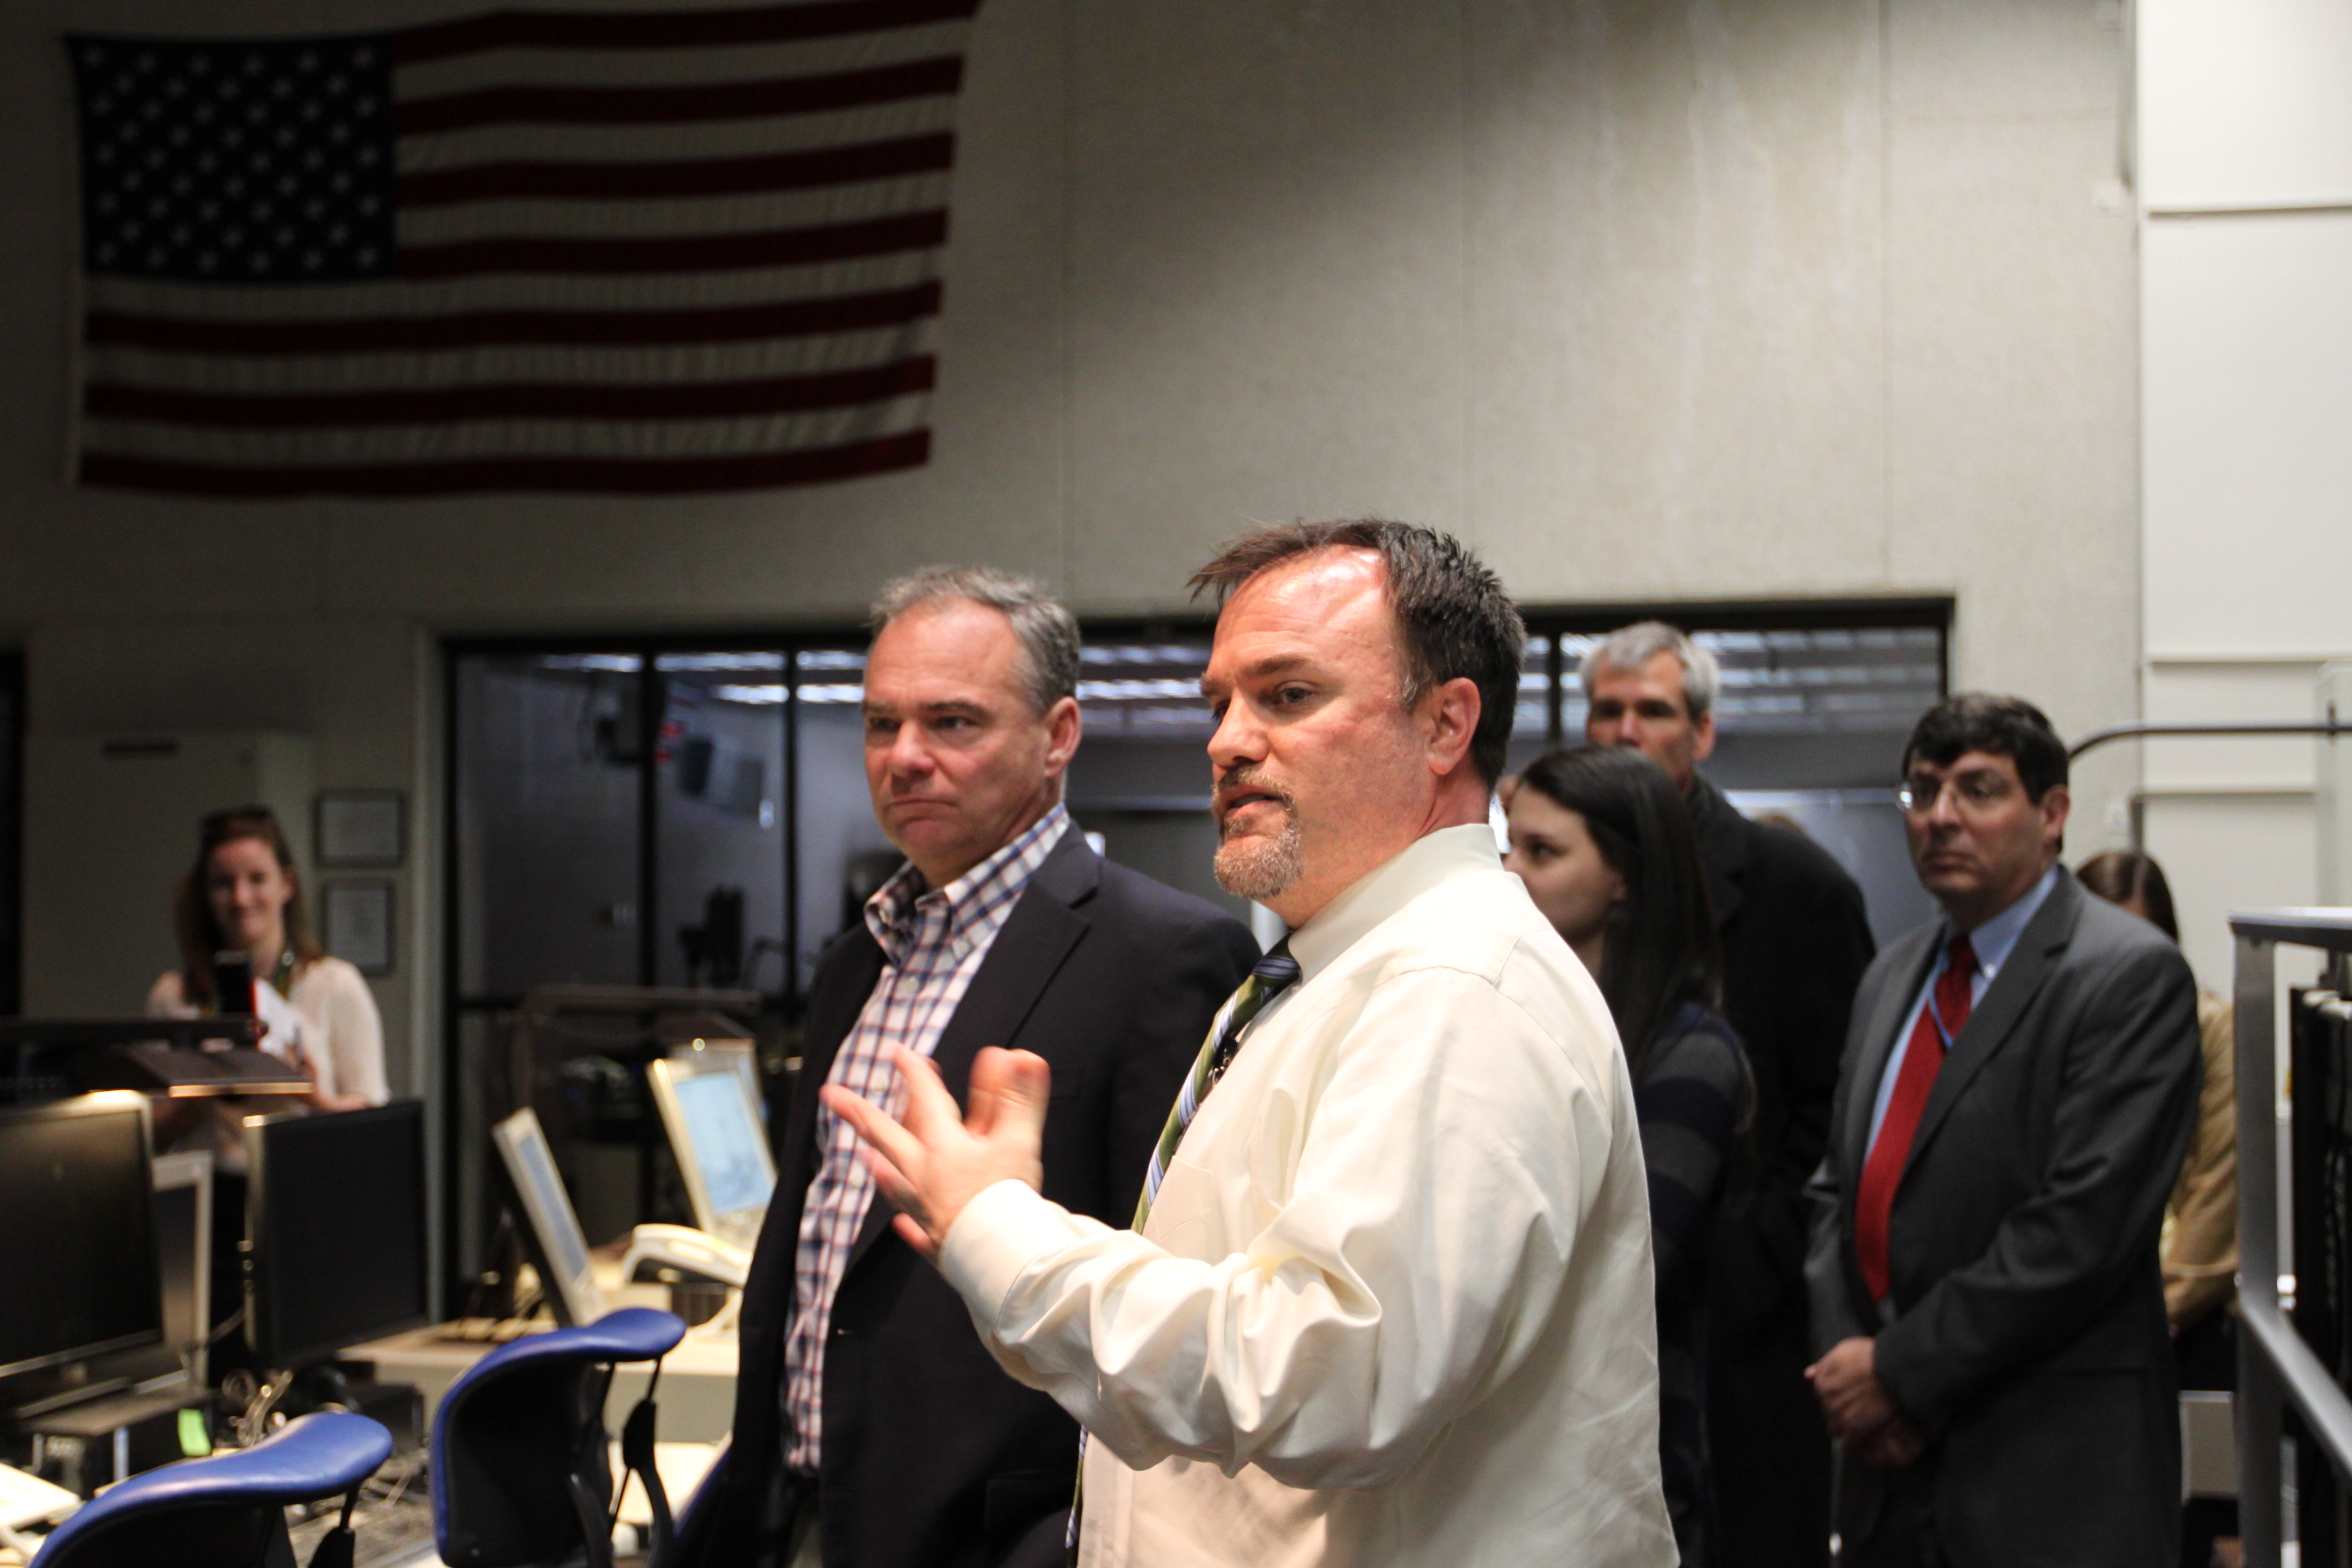 Virginia Senator Tim Kaine receives an overview of the Wallops Range Control Center from Range Deputy Chief Steve Kremer.